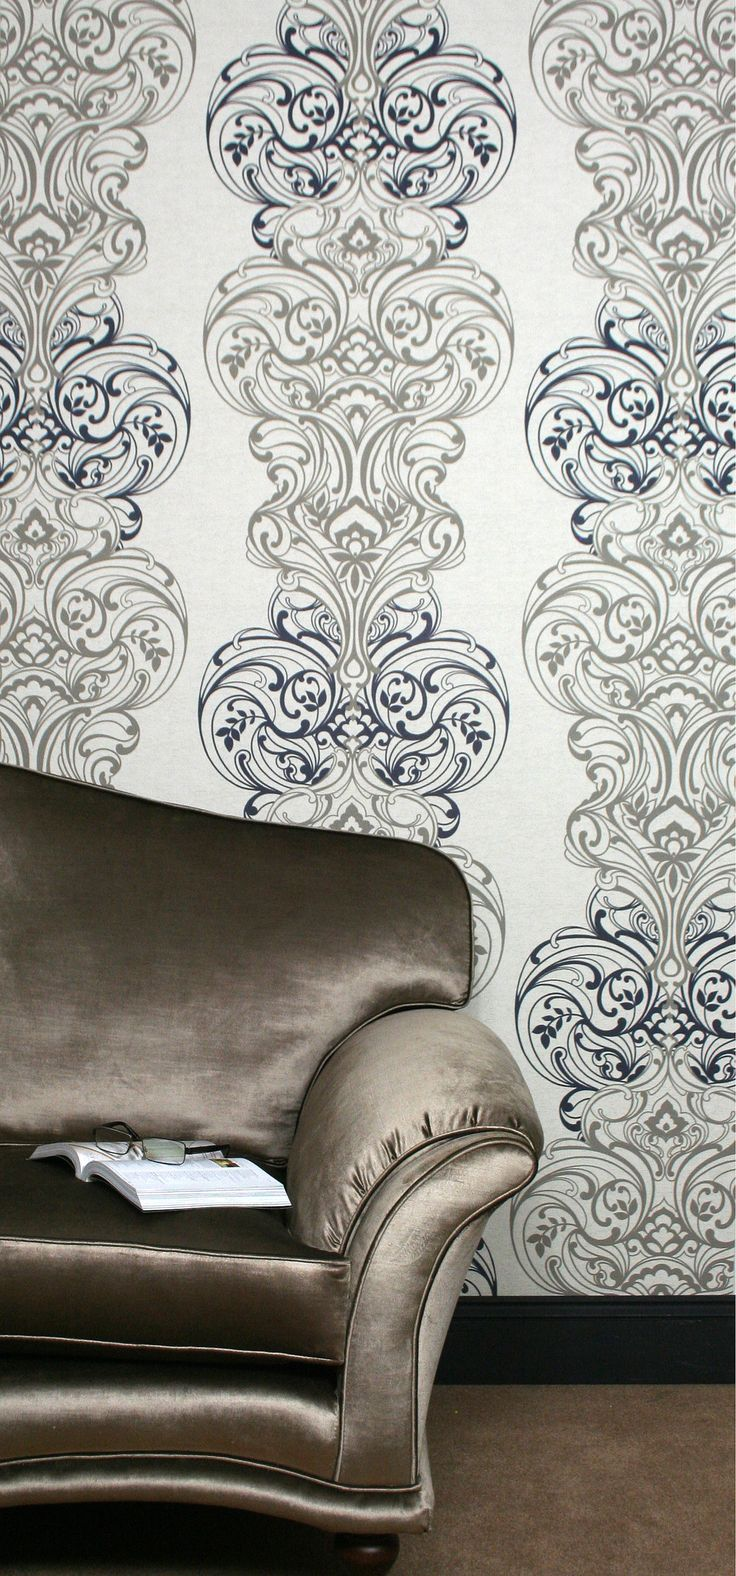 CLASSICO presents a stylish and daring design, which incorporates elements of delicate floral arrangements within this lavish damask pattern. This design creates an artistic impression of woven silk fabric texture, with an echo effect pattern background to contrast with the focal point of the damask design.